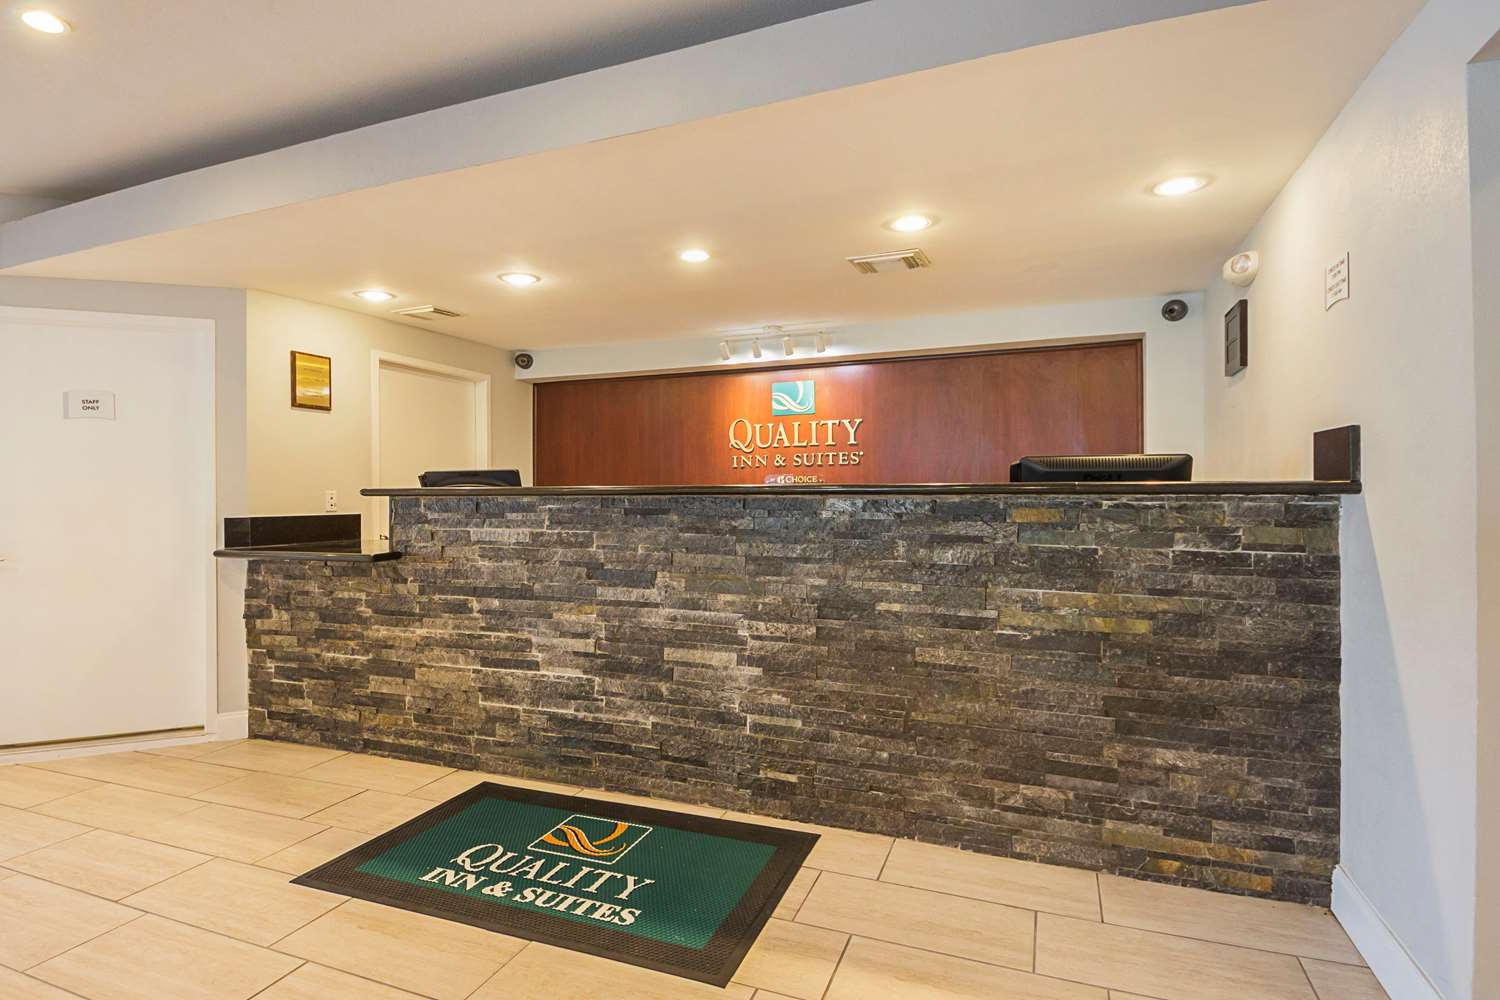 Lobby - Quality Inn & Suites Richland Hills